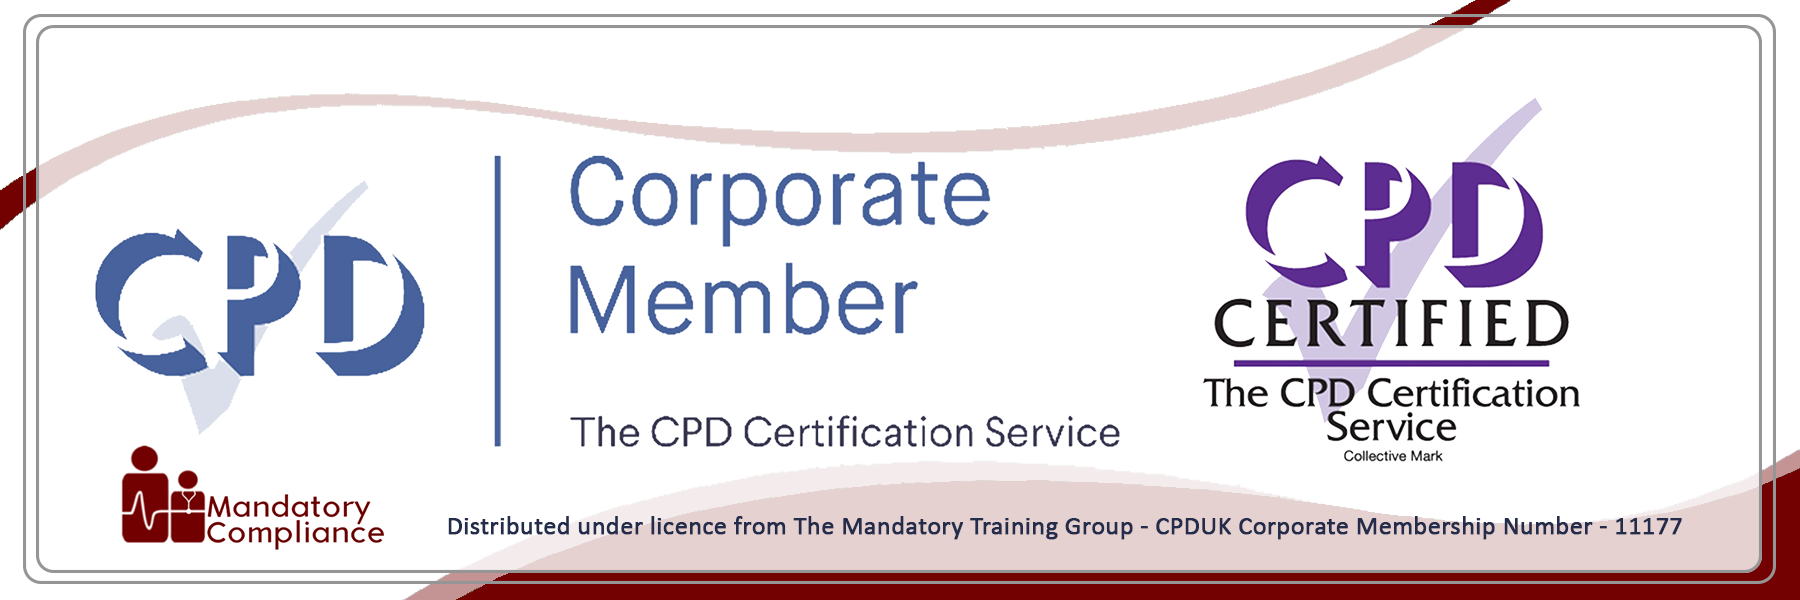 Health and Safety in the Workplace - Online Training Course - CPD Accredited -